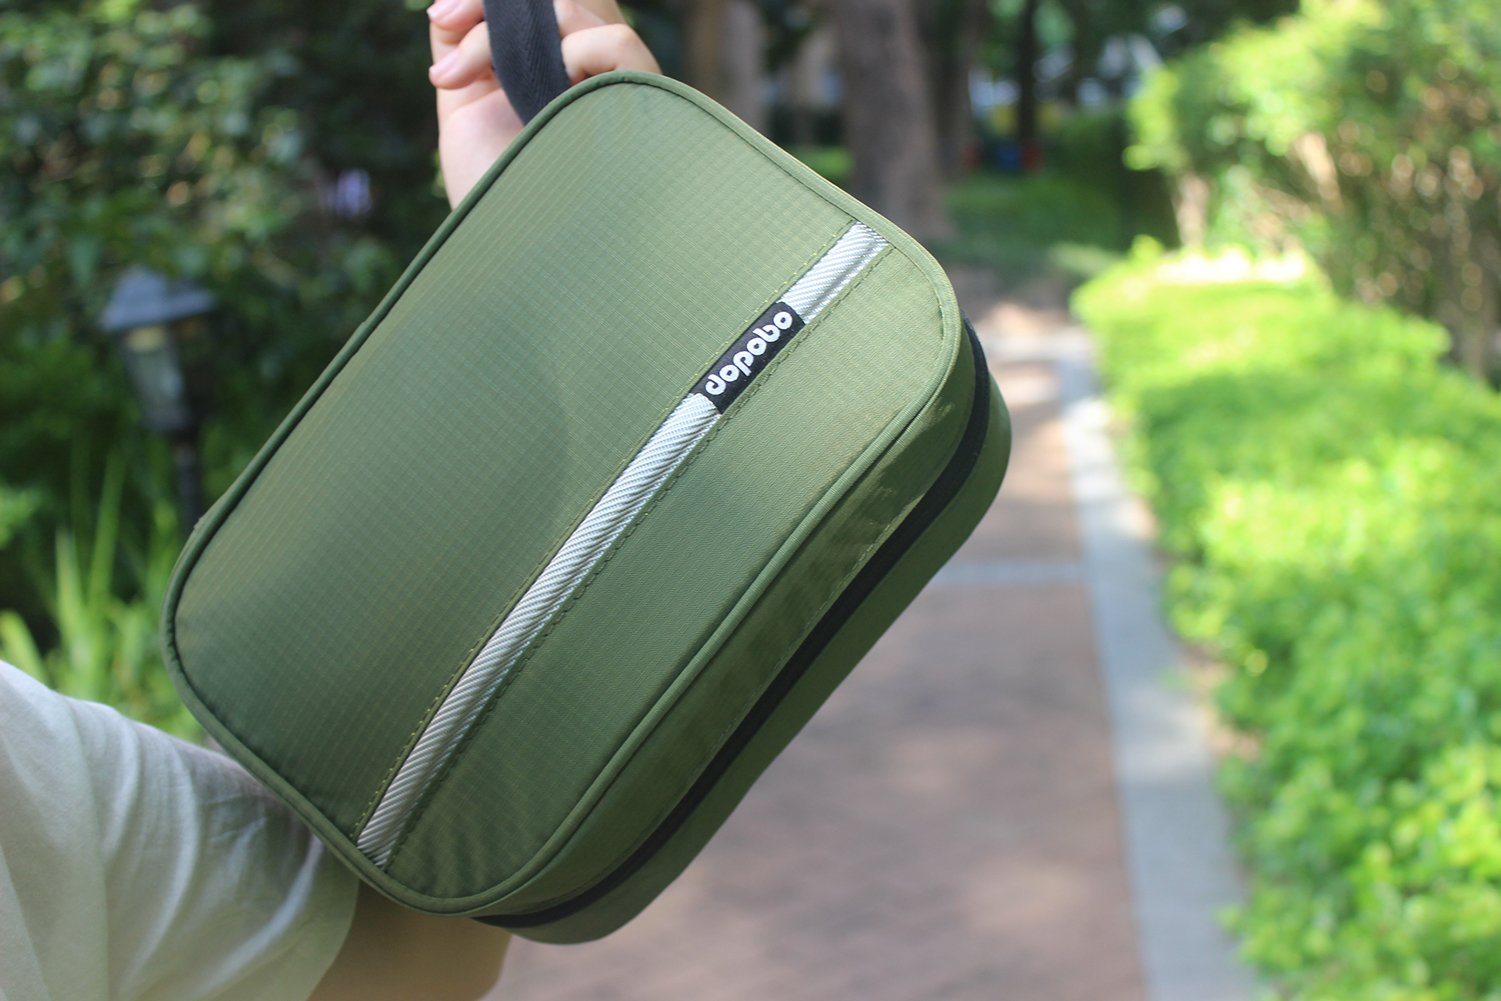 Dopobo Travelling Toiletry Bag Portable Hanging Water-Resistant Wash Bag for Travelling, Business Trip, Camping (army green) by Dopobo (Image #7)